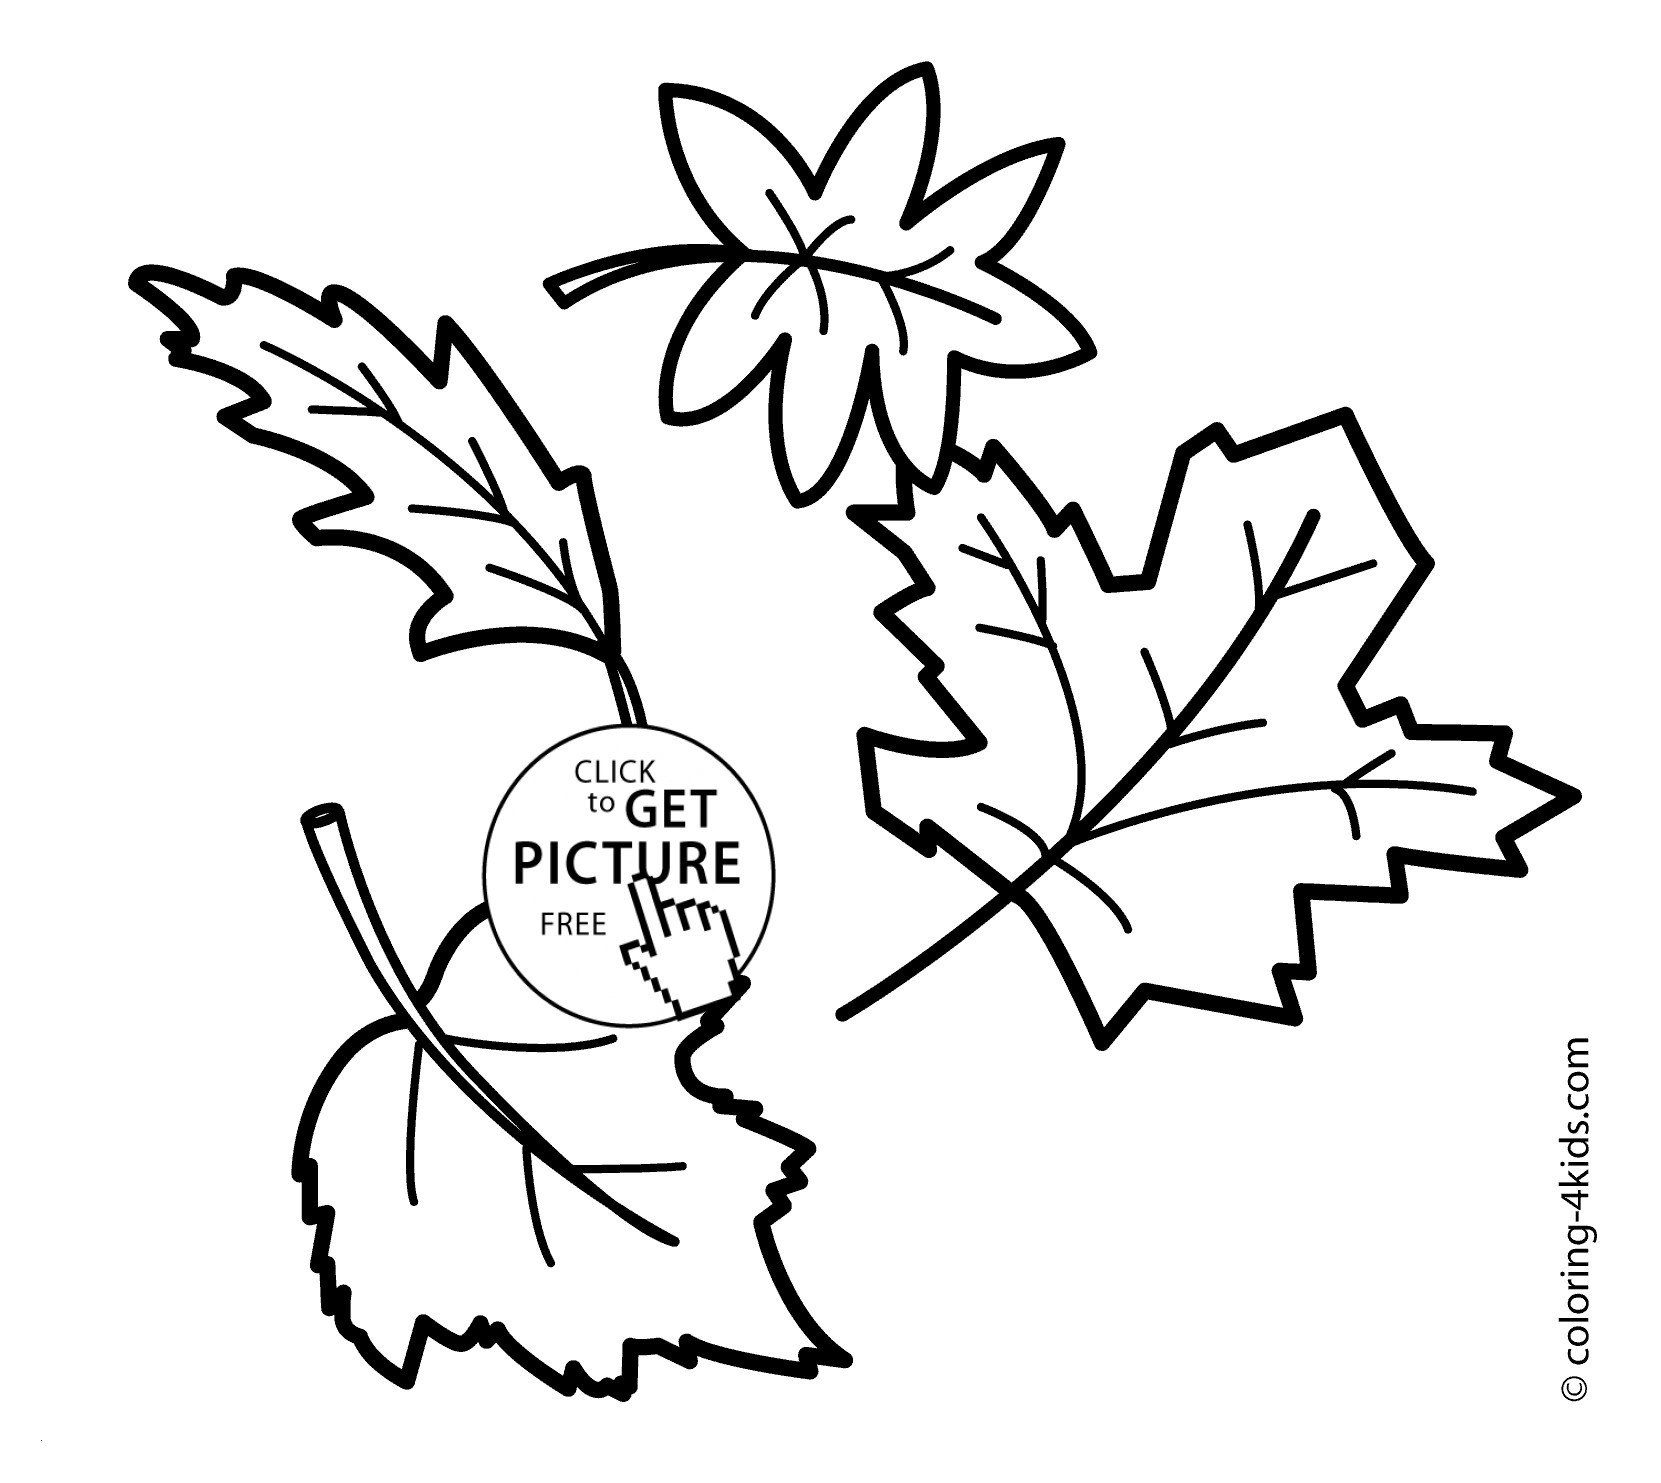 Printable Colored Autumn Leaves | Download Them Or Print - Free Printable Fall Leaves Coloring Pages